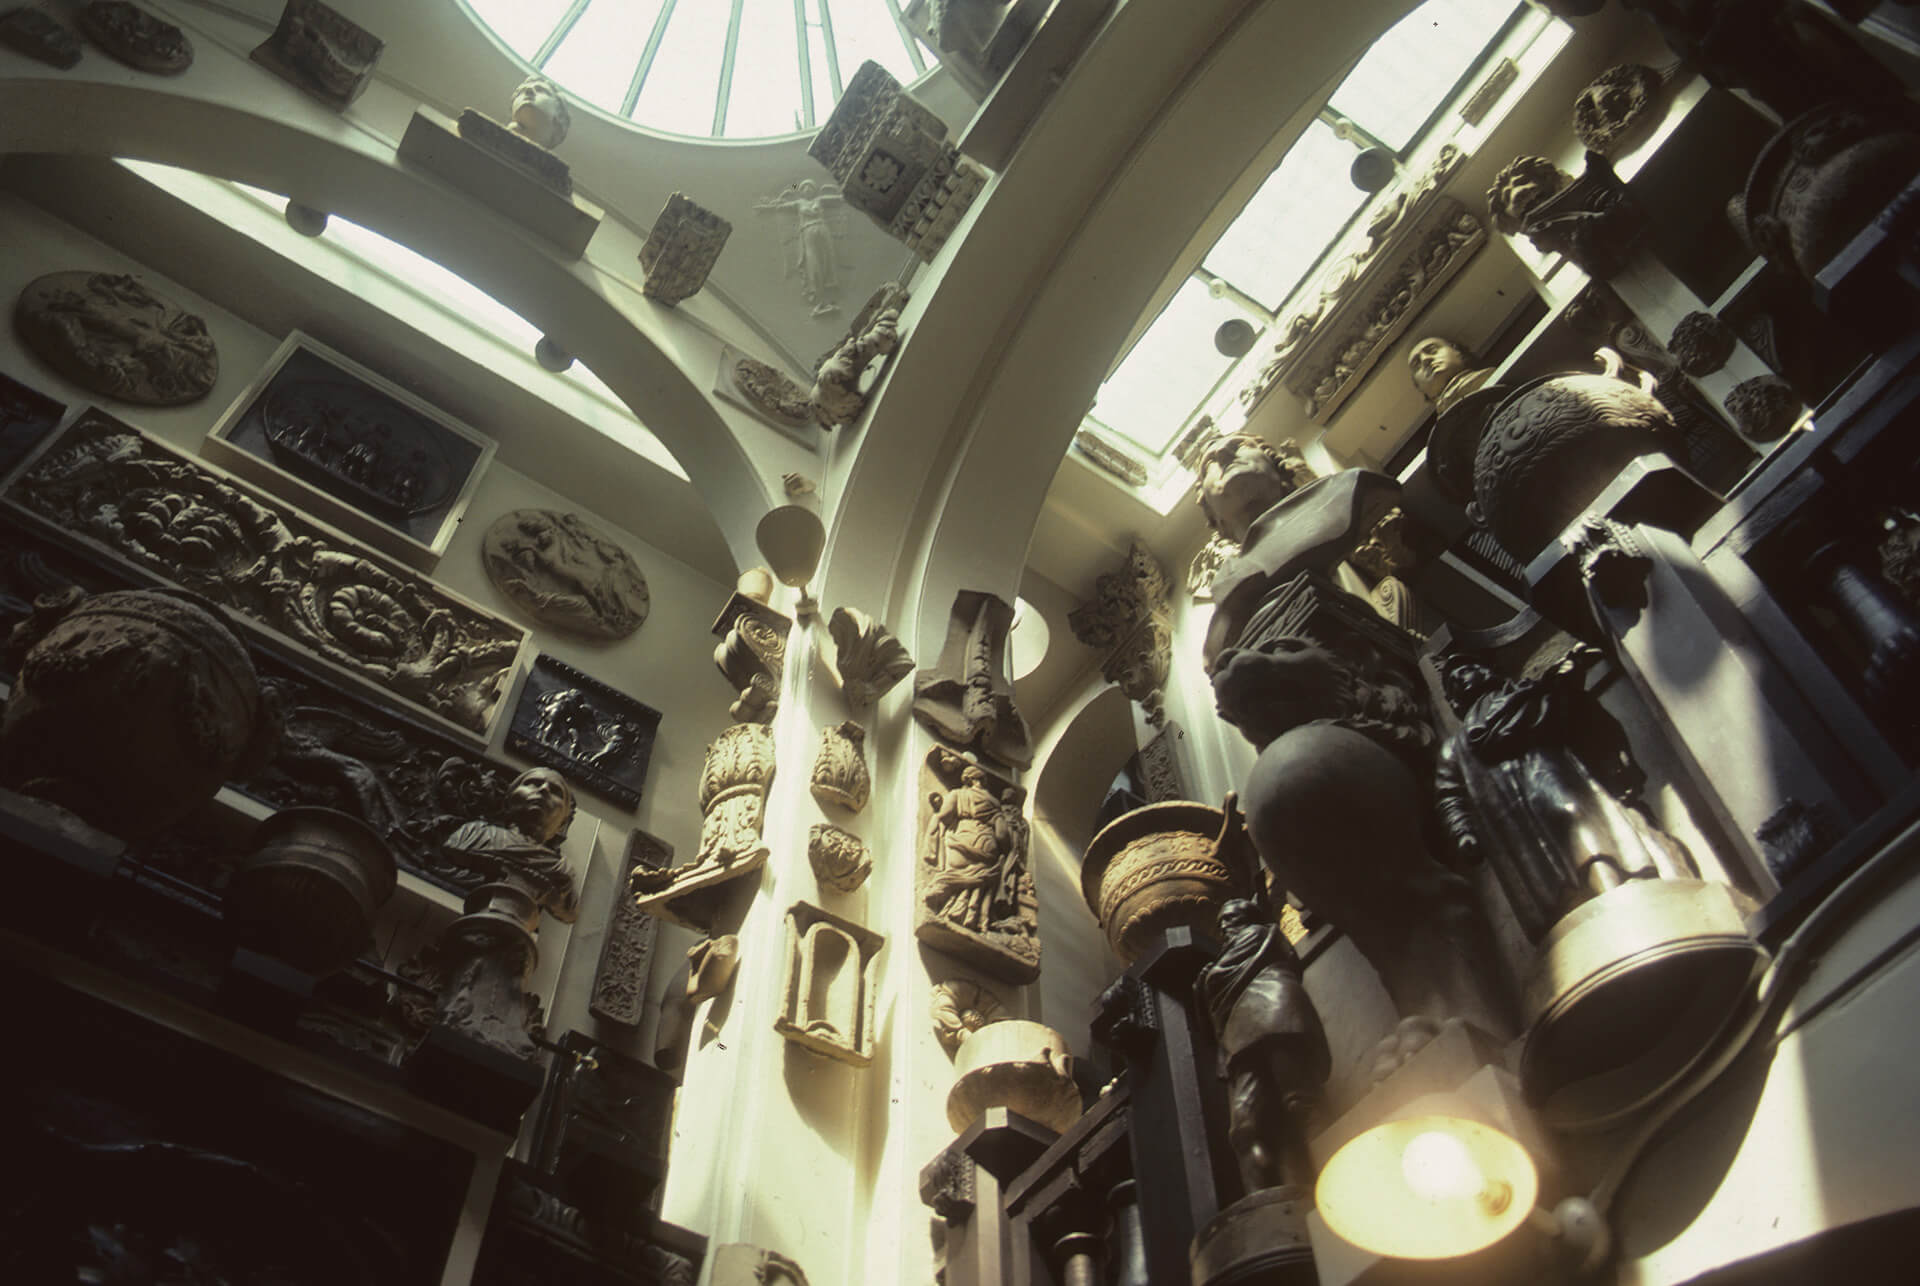 The Sir John Soane museum for the most part retains Soane's original crowded 'hang', as the Soane Museum Act requires | John Soane Museum | All that could have been | STIRworld